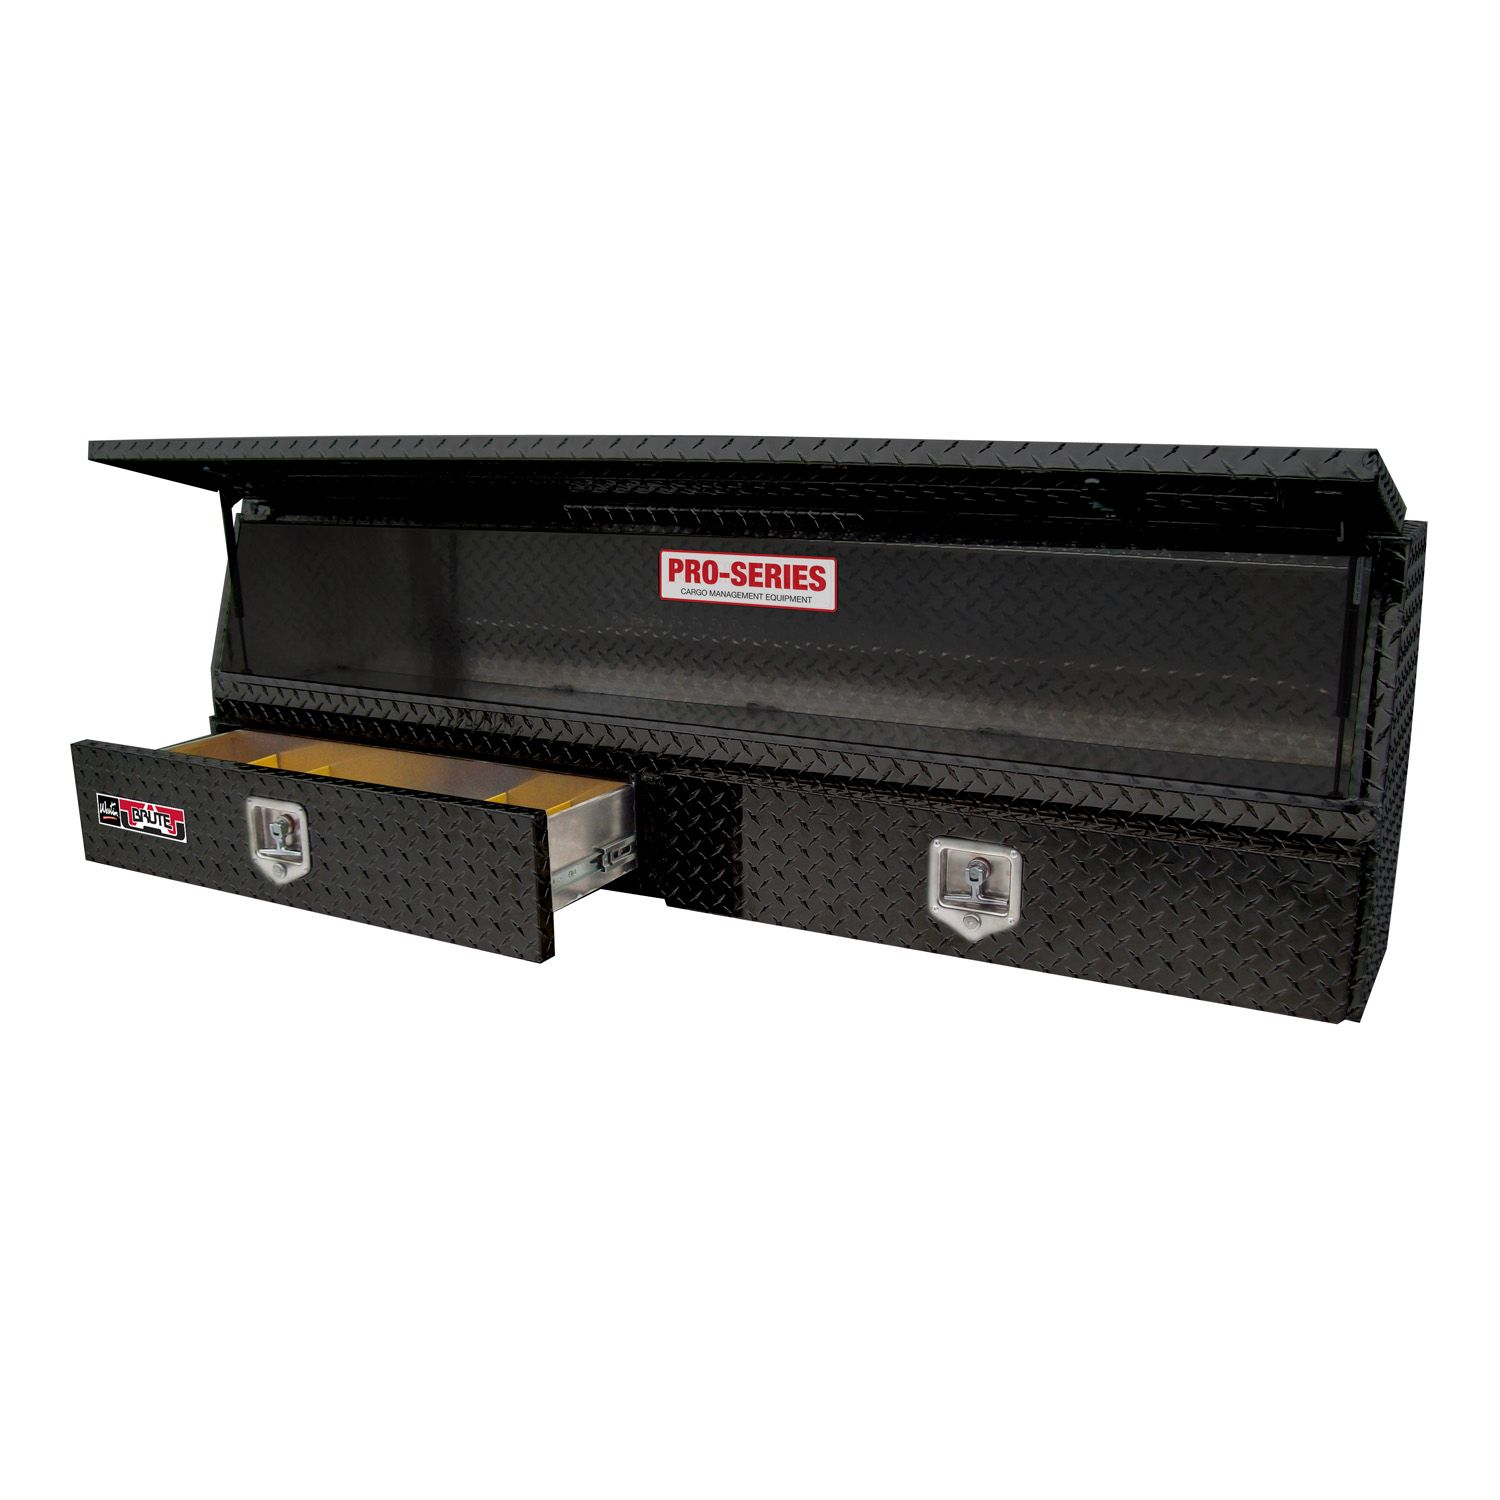 Contractor TopSider 72in w/Bottom Drawers Black Powder